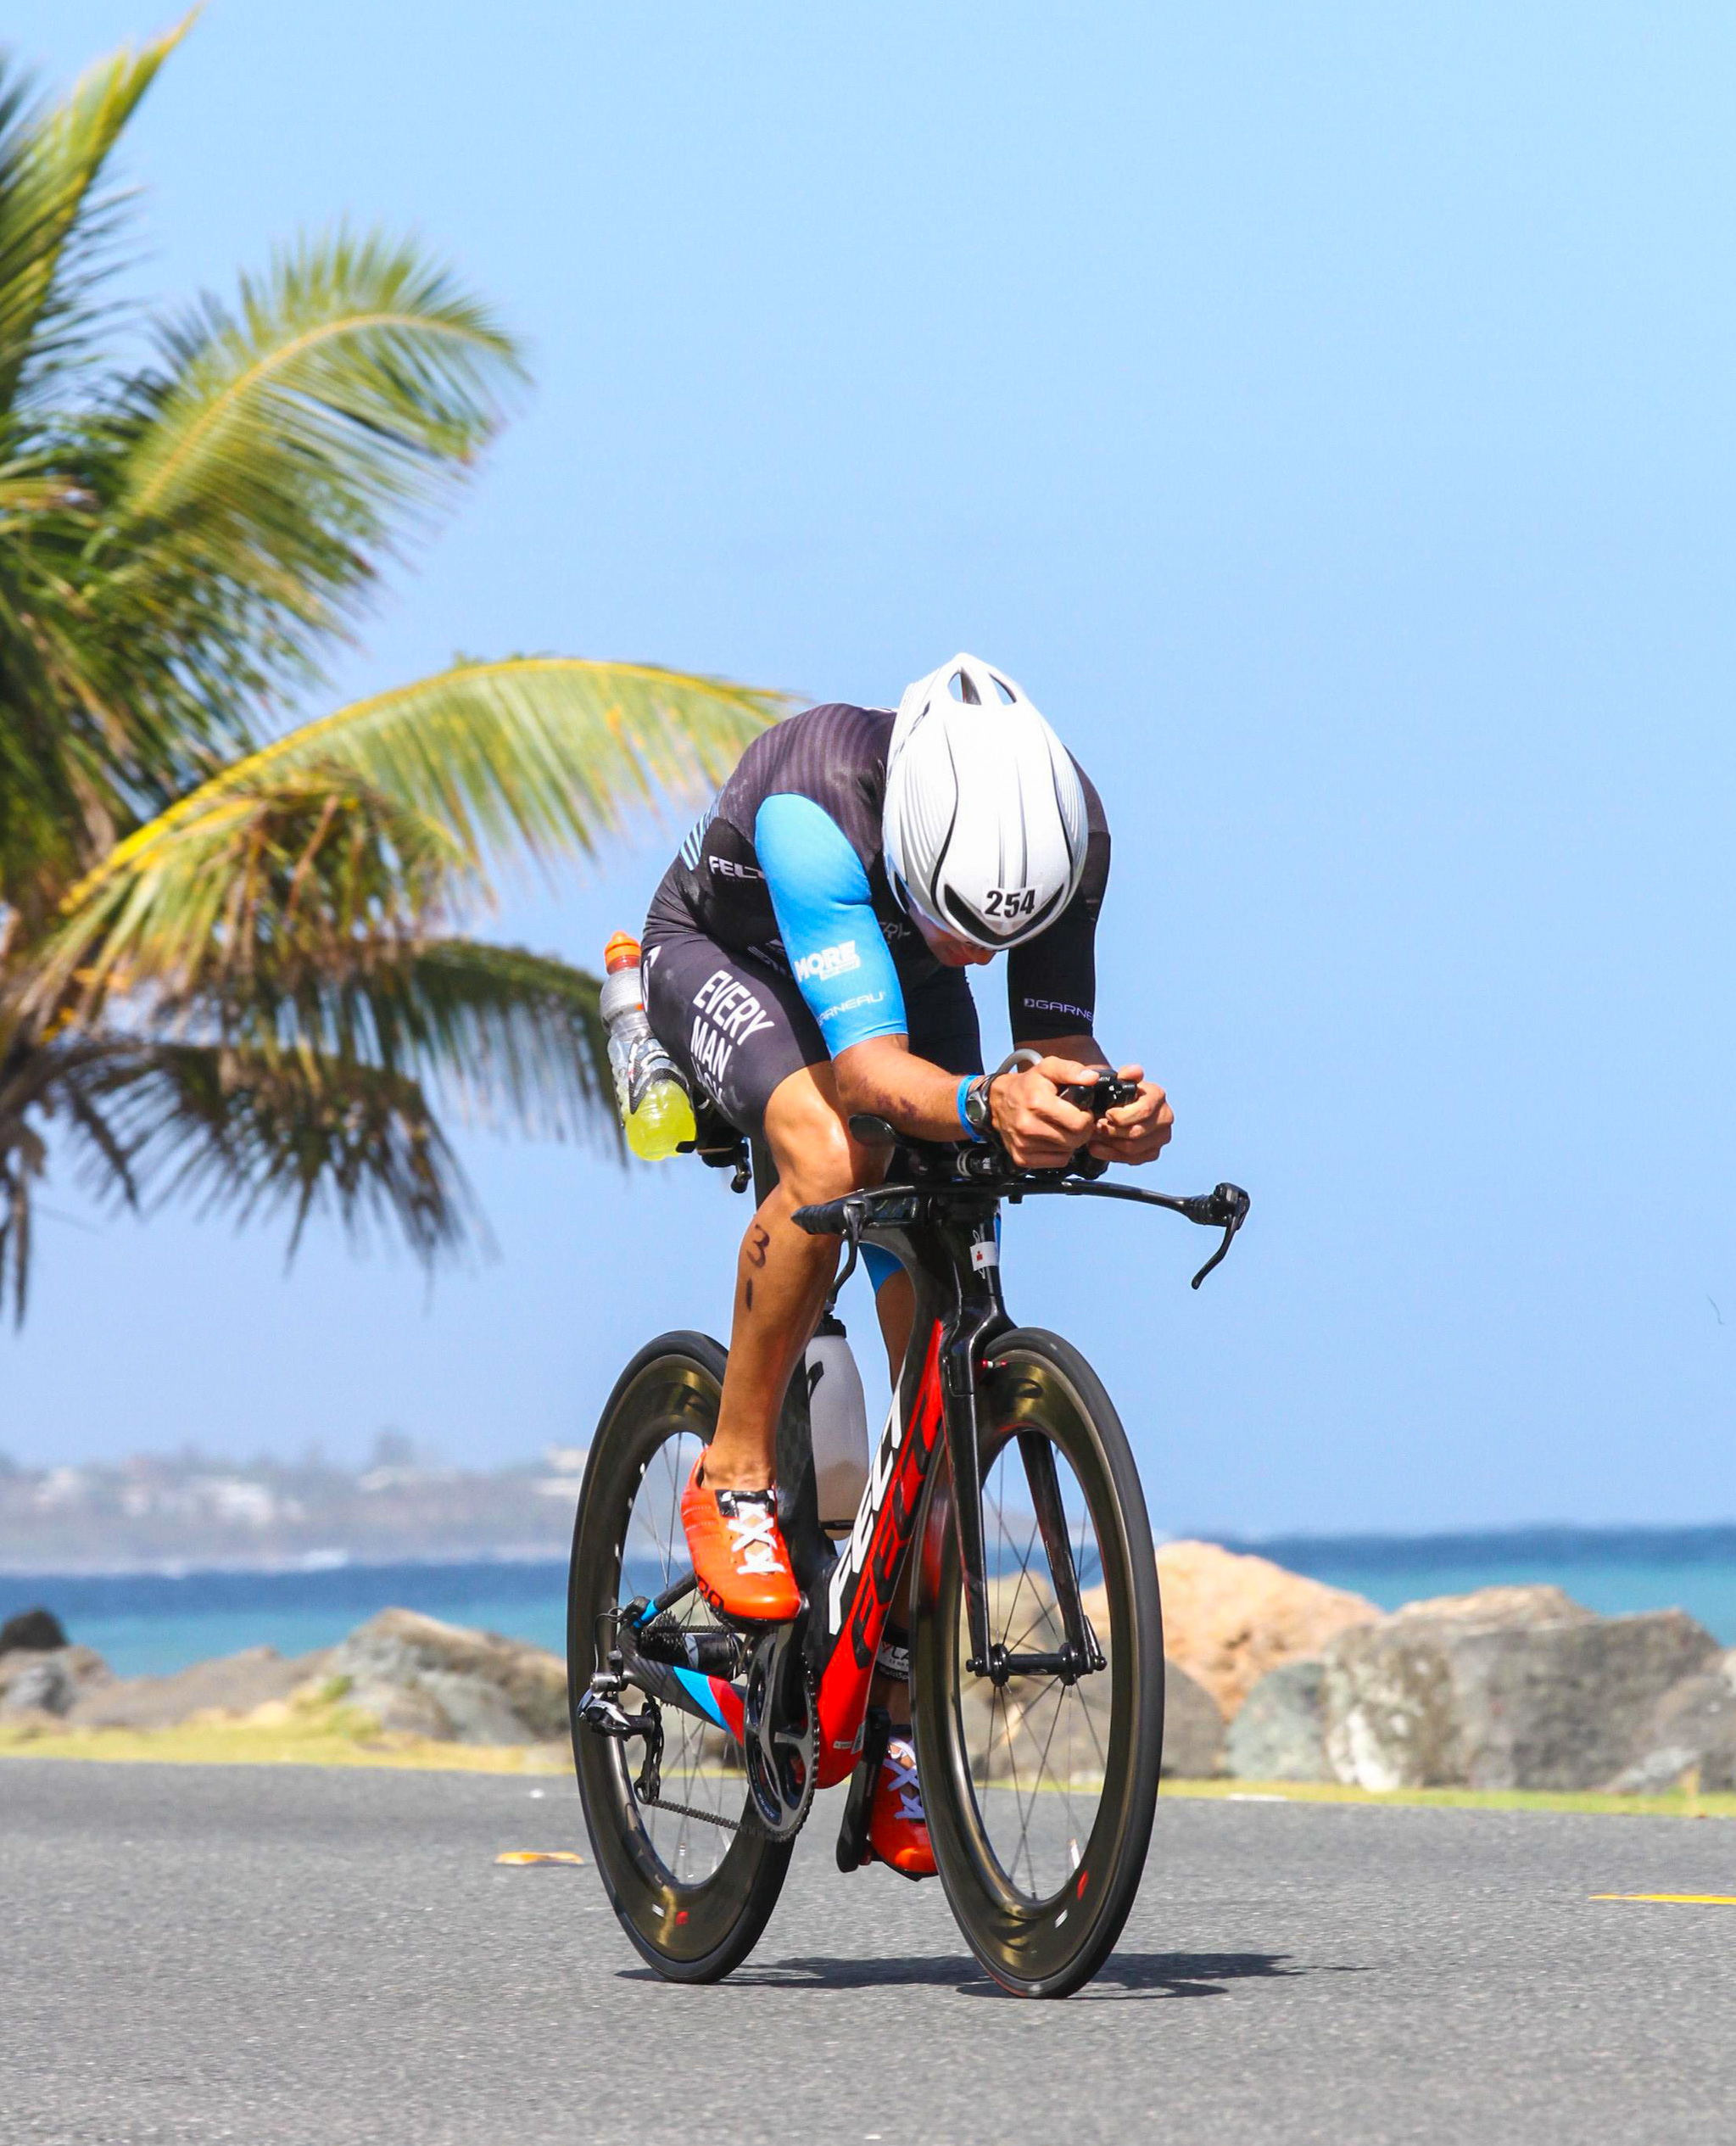 Ironman Puerto Rico 70.3 Bike